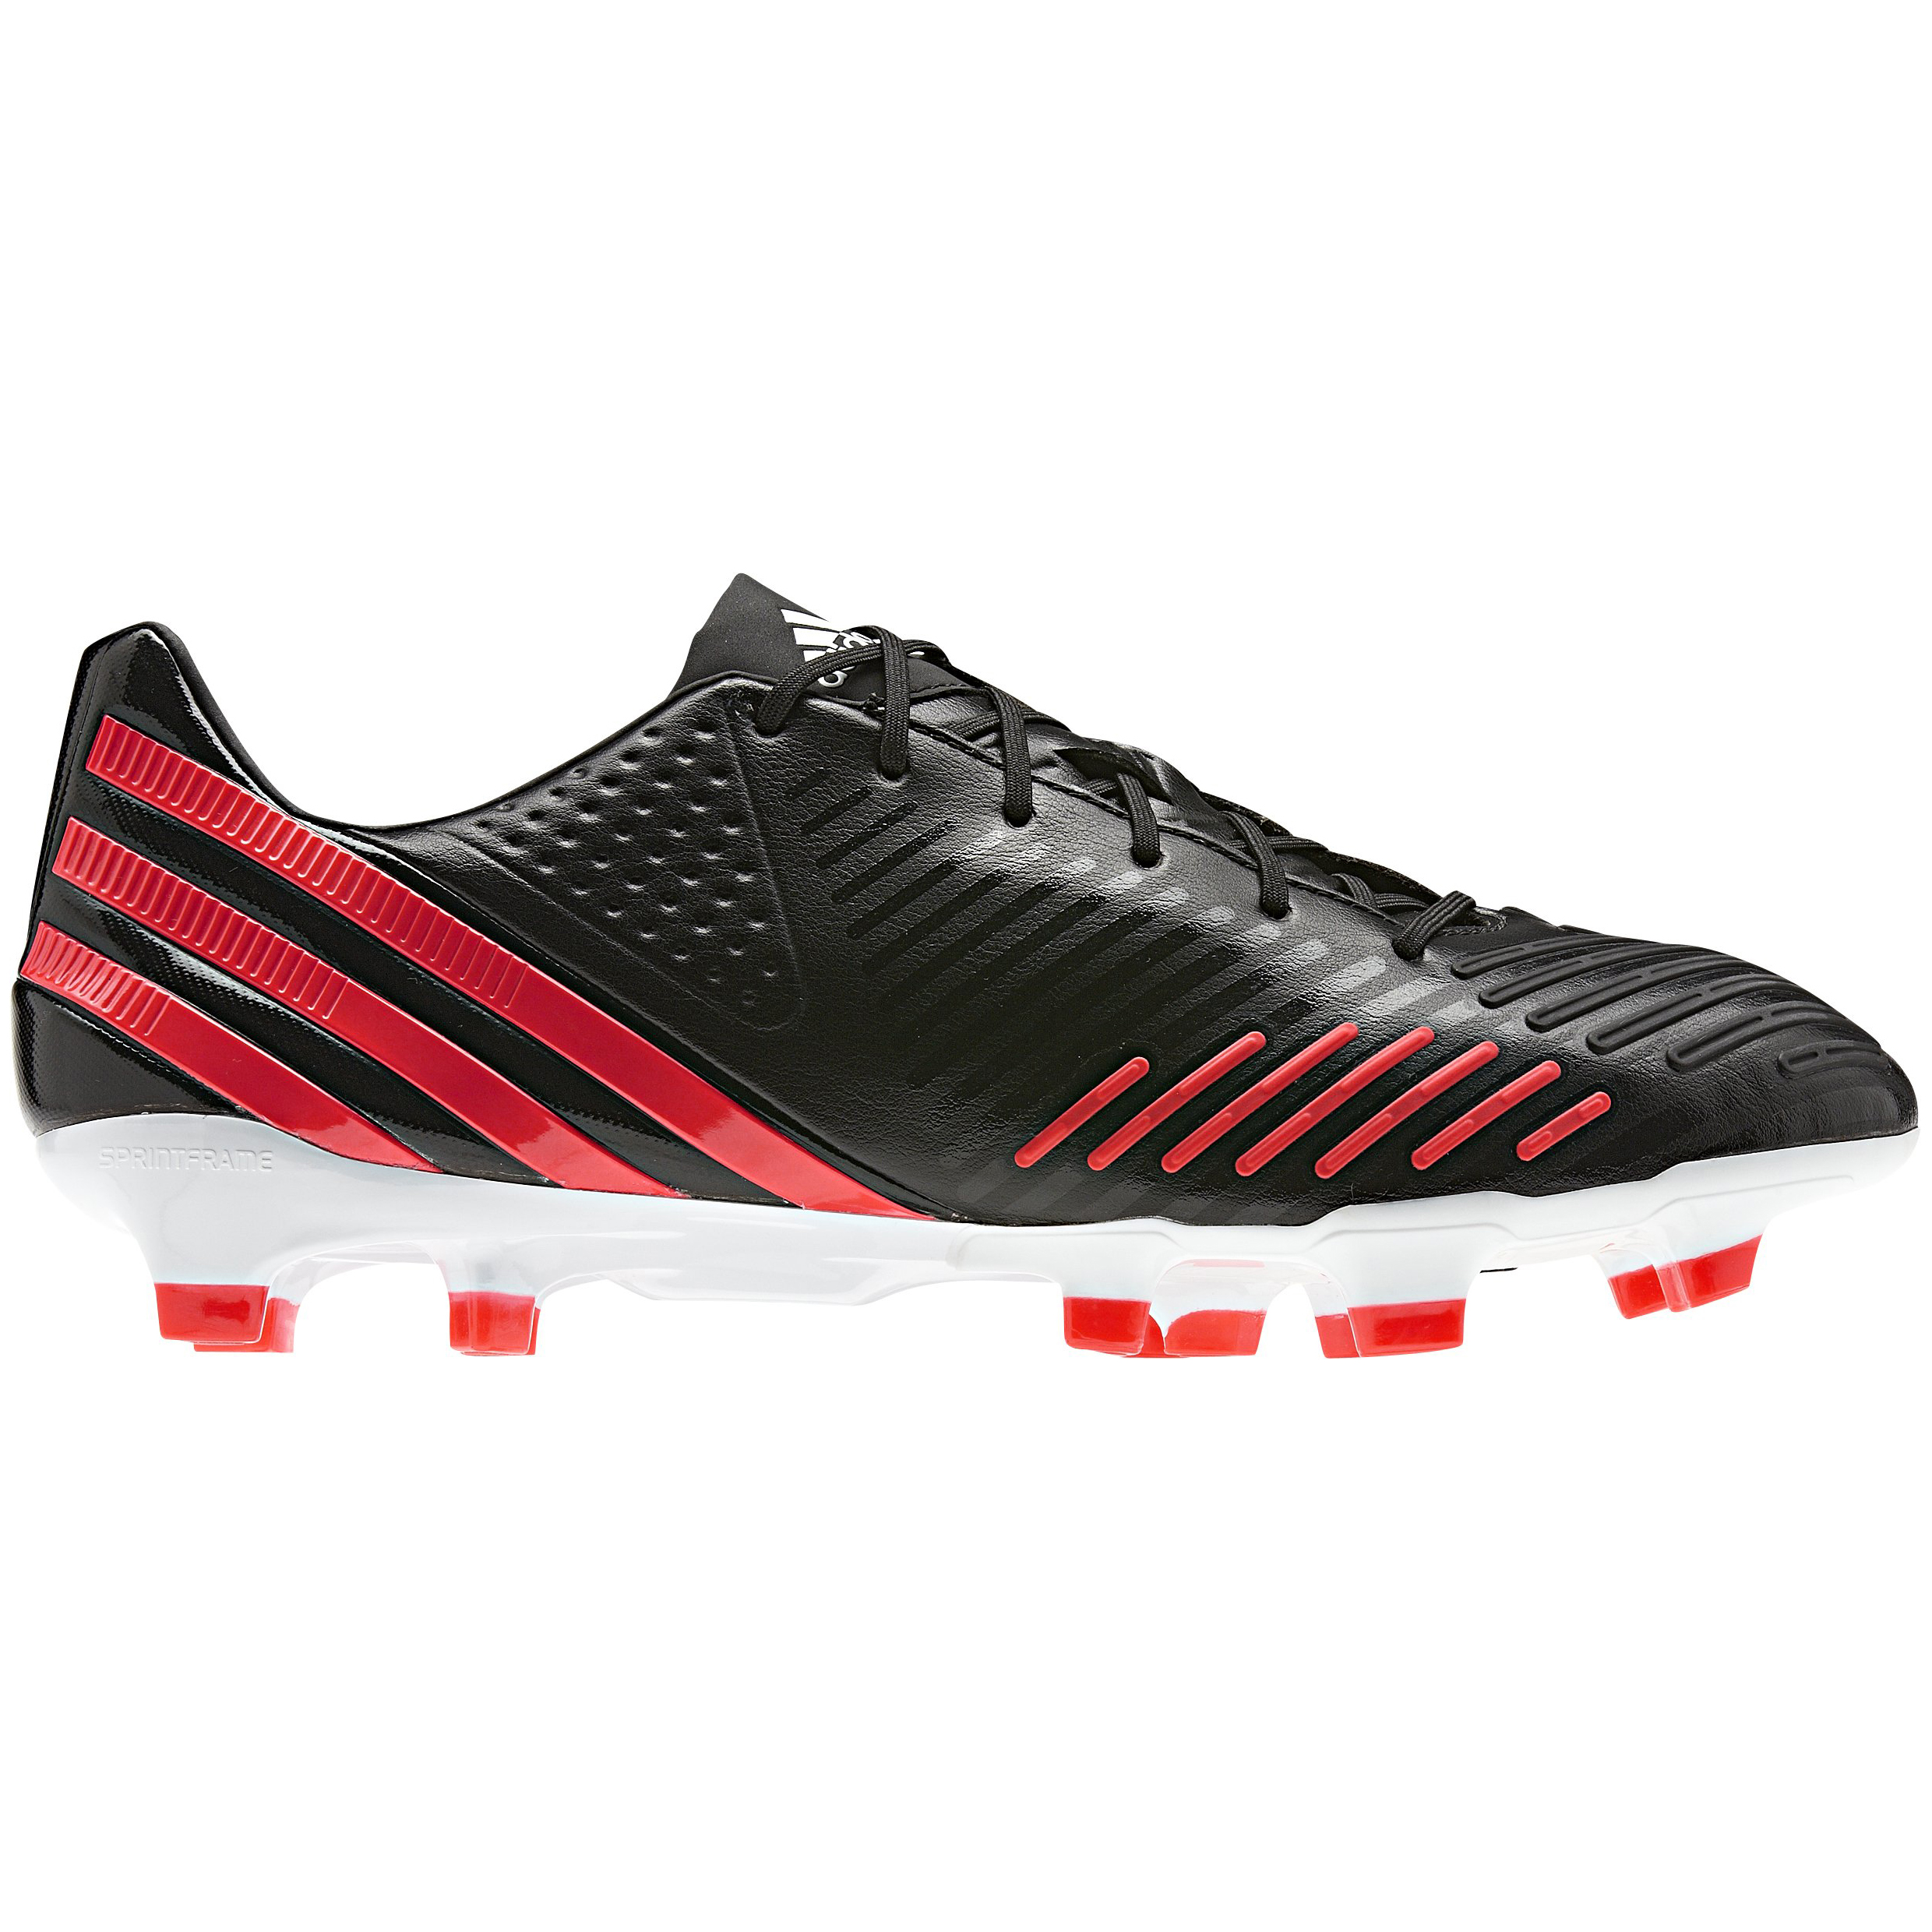 adidas Predator LZ TRX Firm Ground Football Boots - Black/Pop/Running White